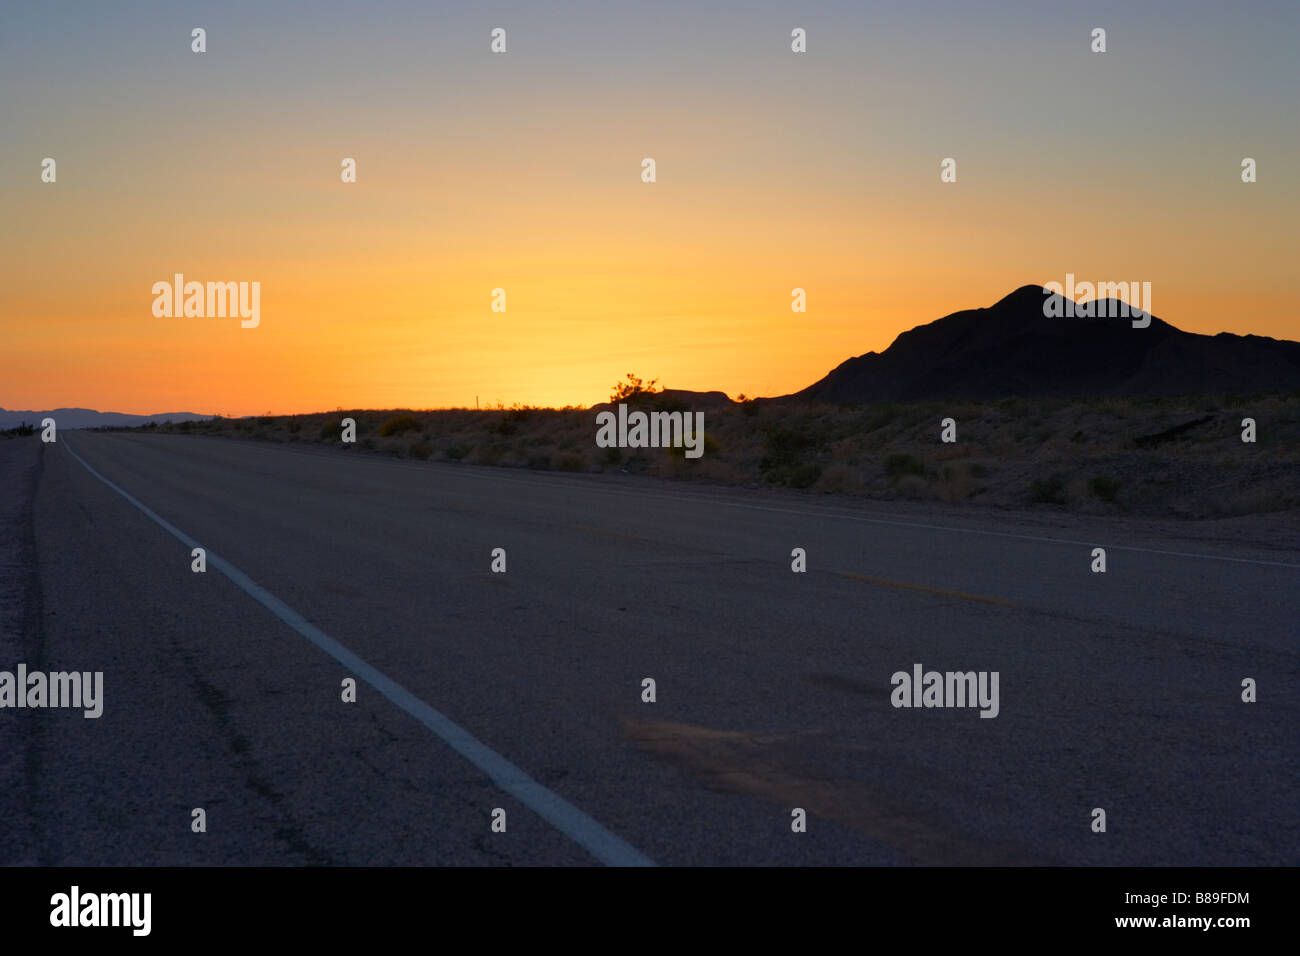 Deserted road in Mojave Desert California United States of America - Stock Image